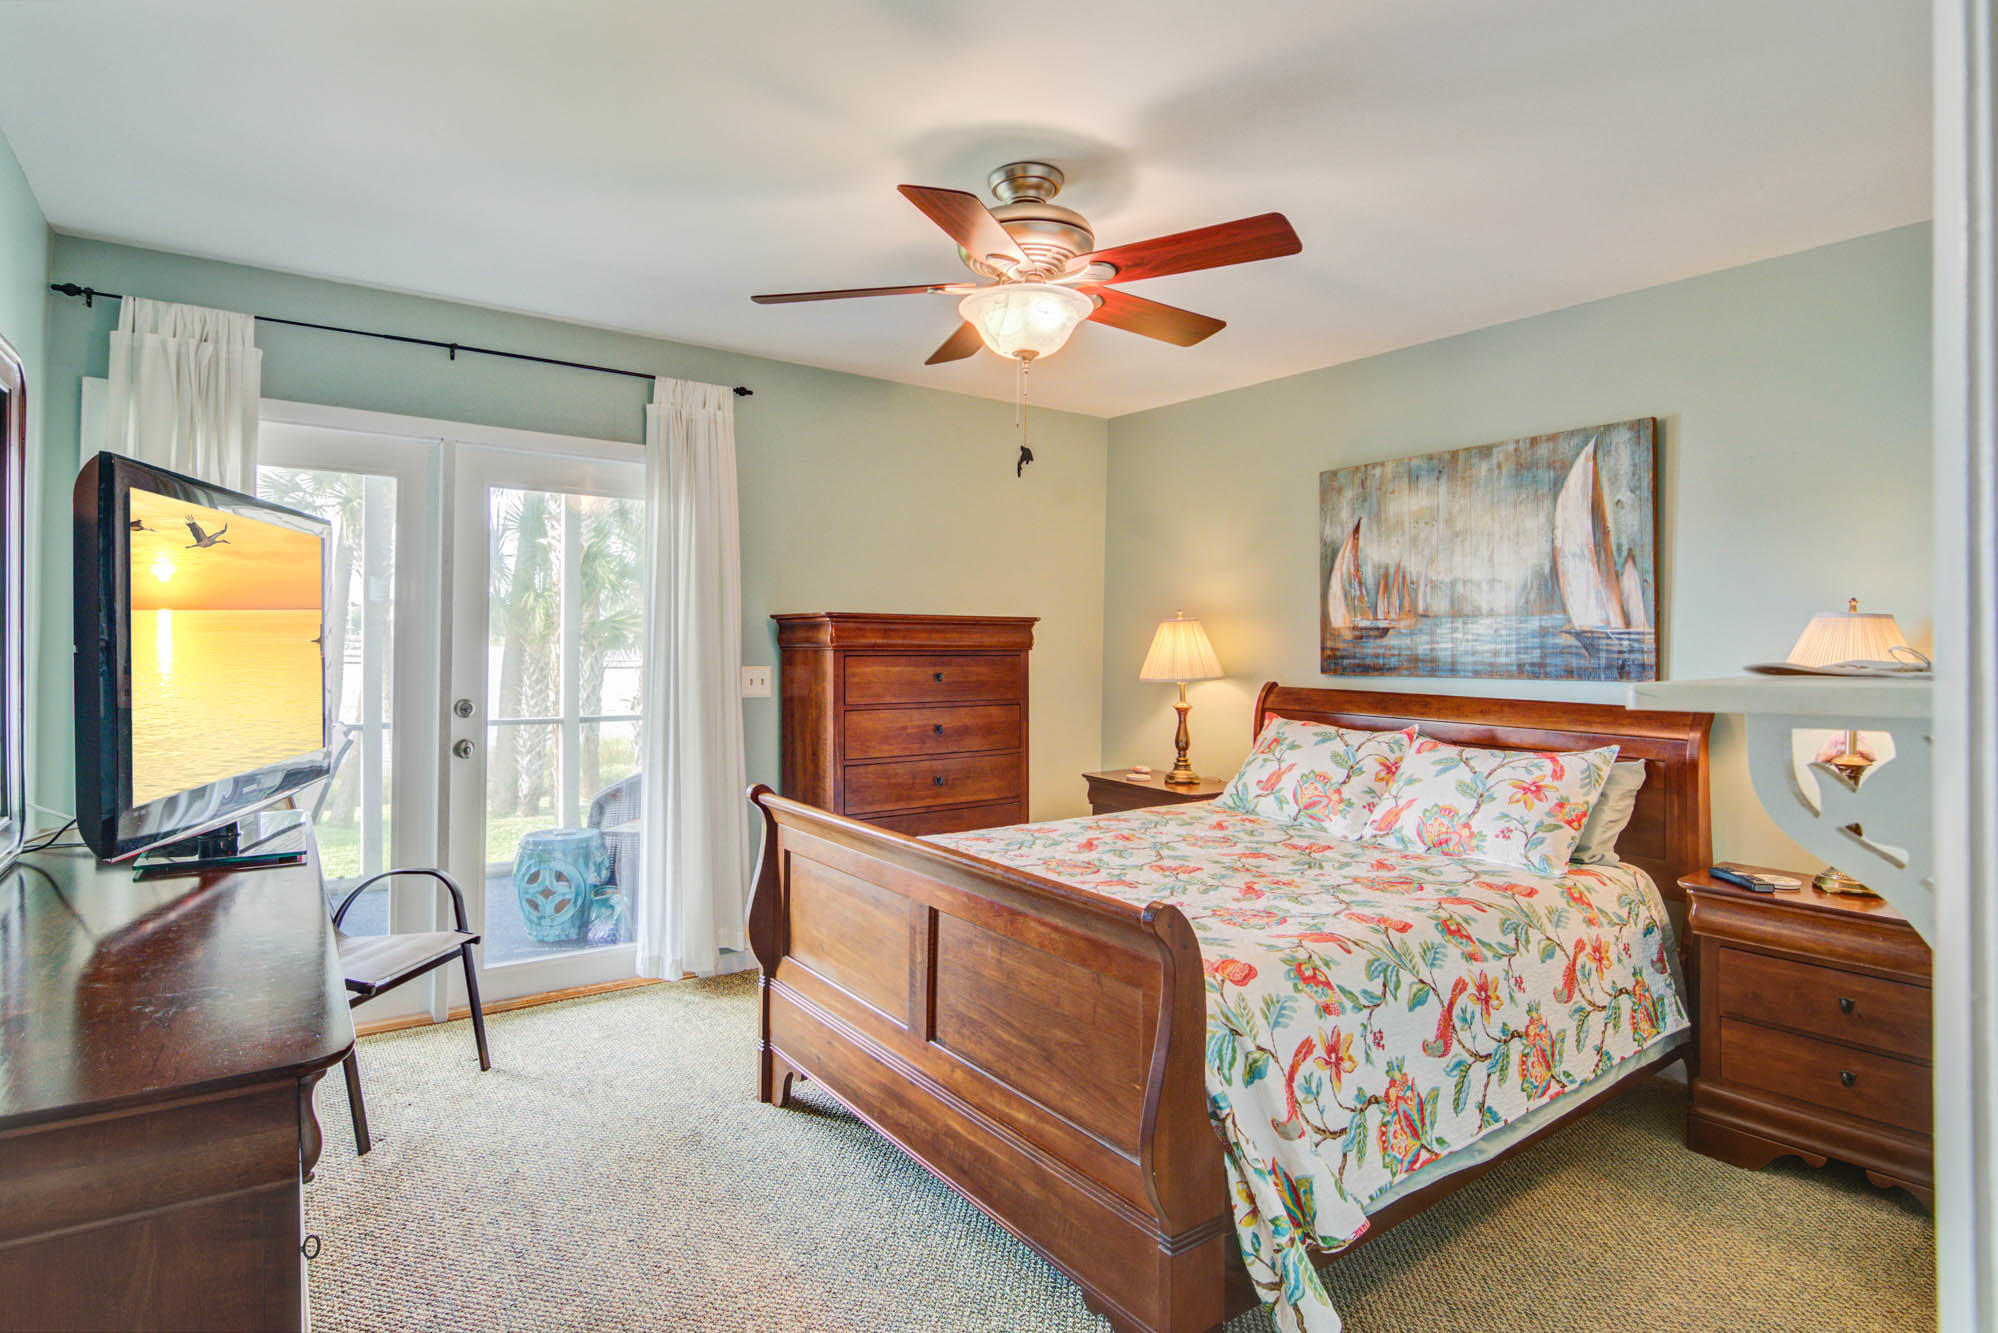 Mariners Cay Homes For Sale - 19 Mariners Cay, Folly Beach, SC - 15